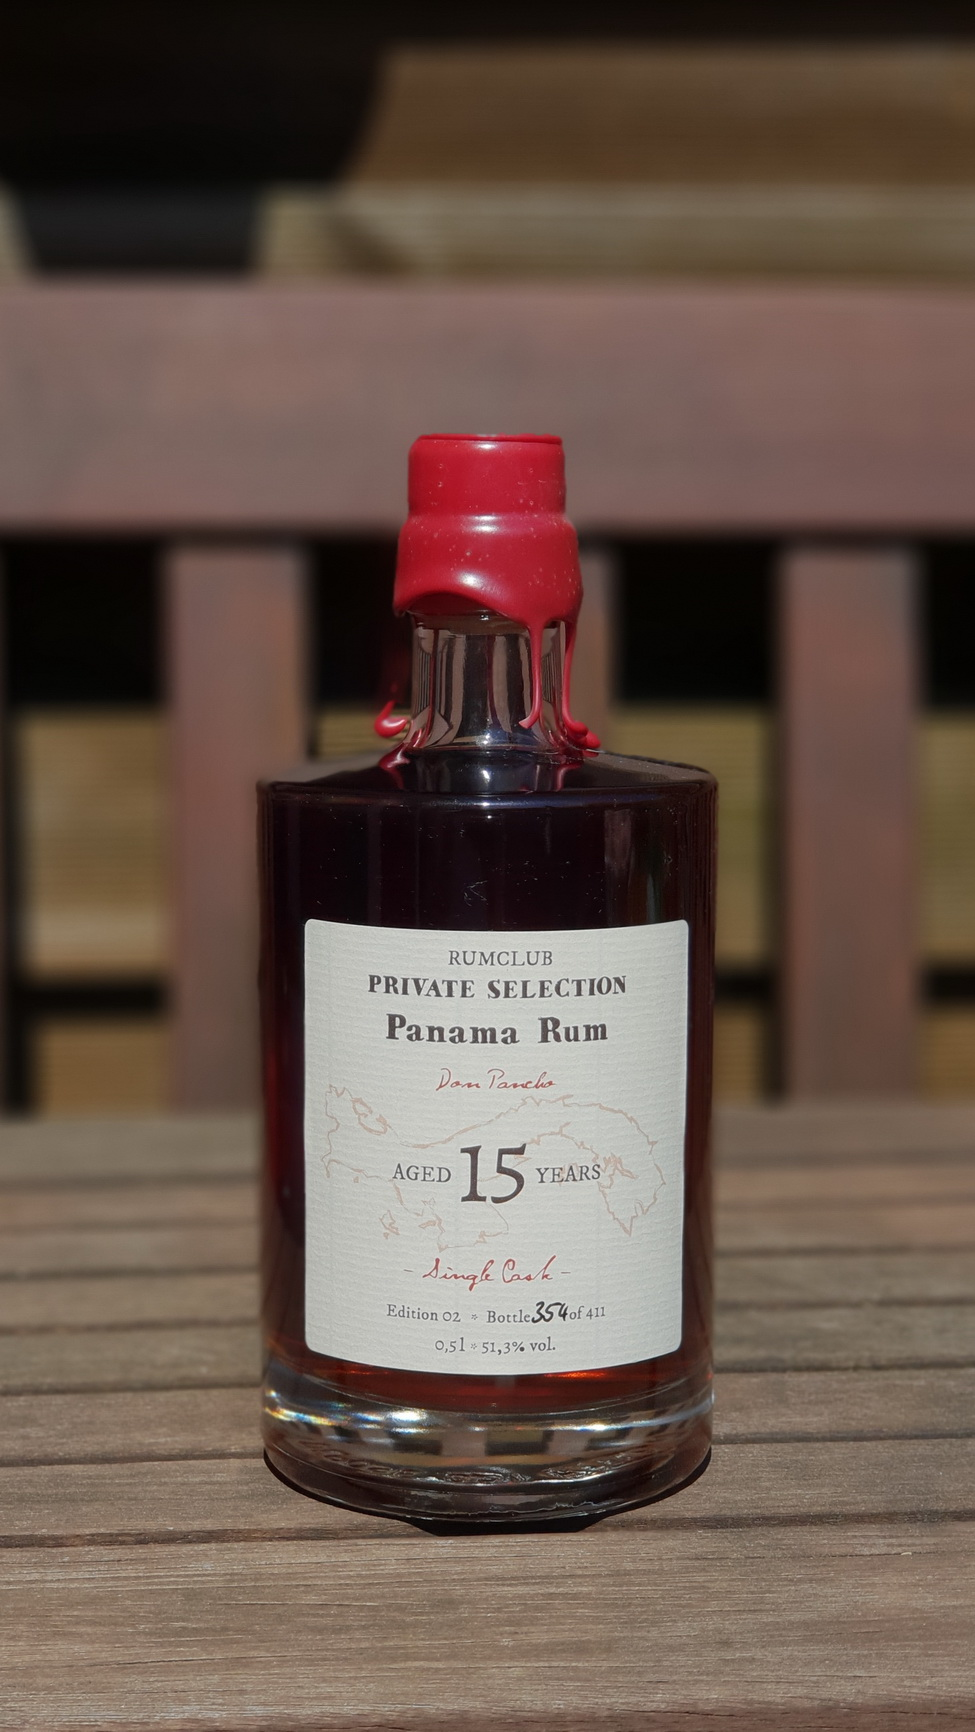 Rumclub Private Selection Panama Rum von Don Pancho.Edition 02, Flasche Nr. 354 von 411.